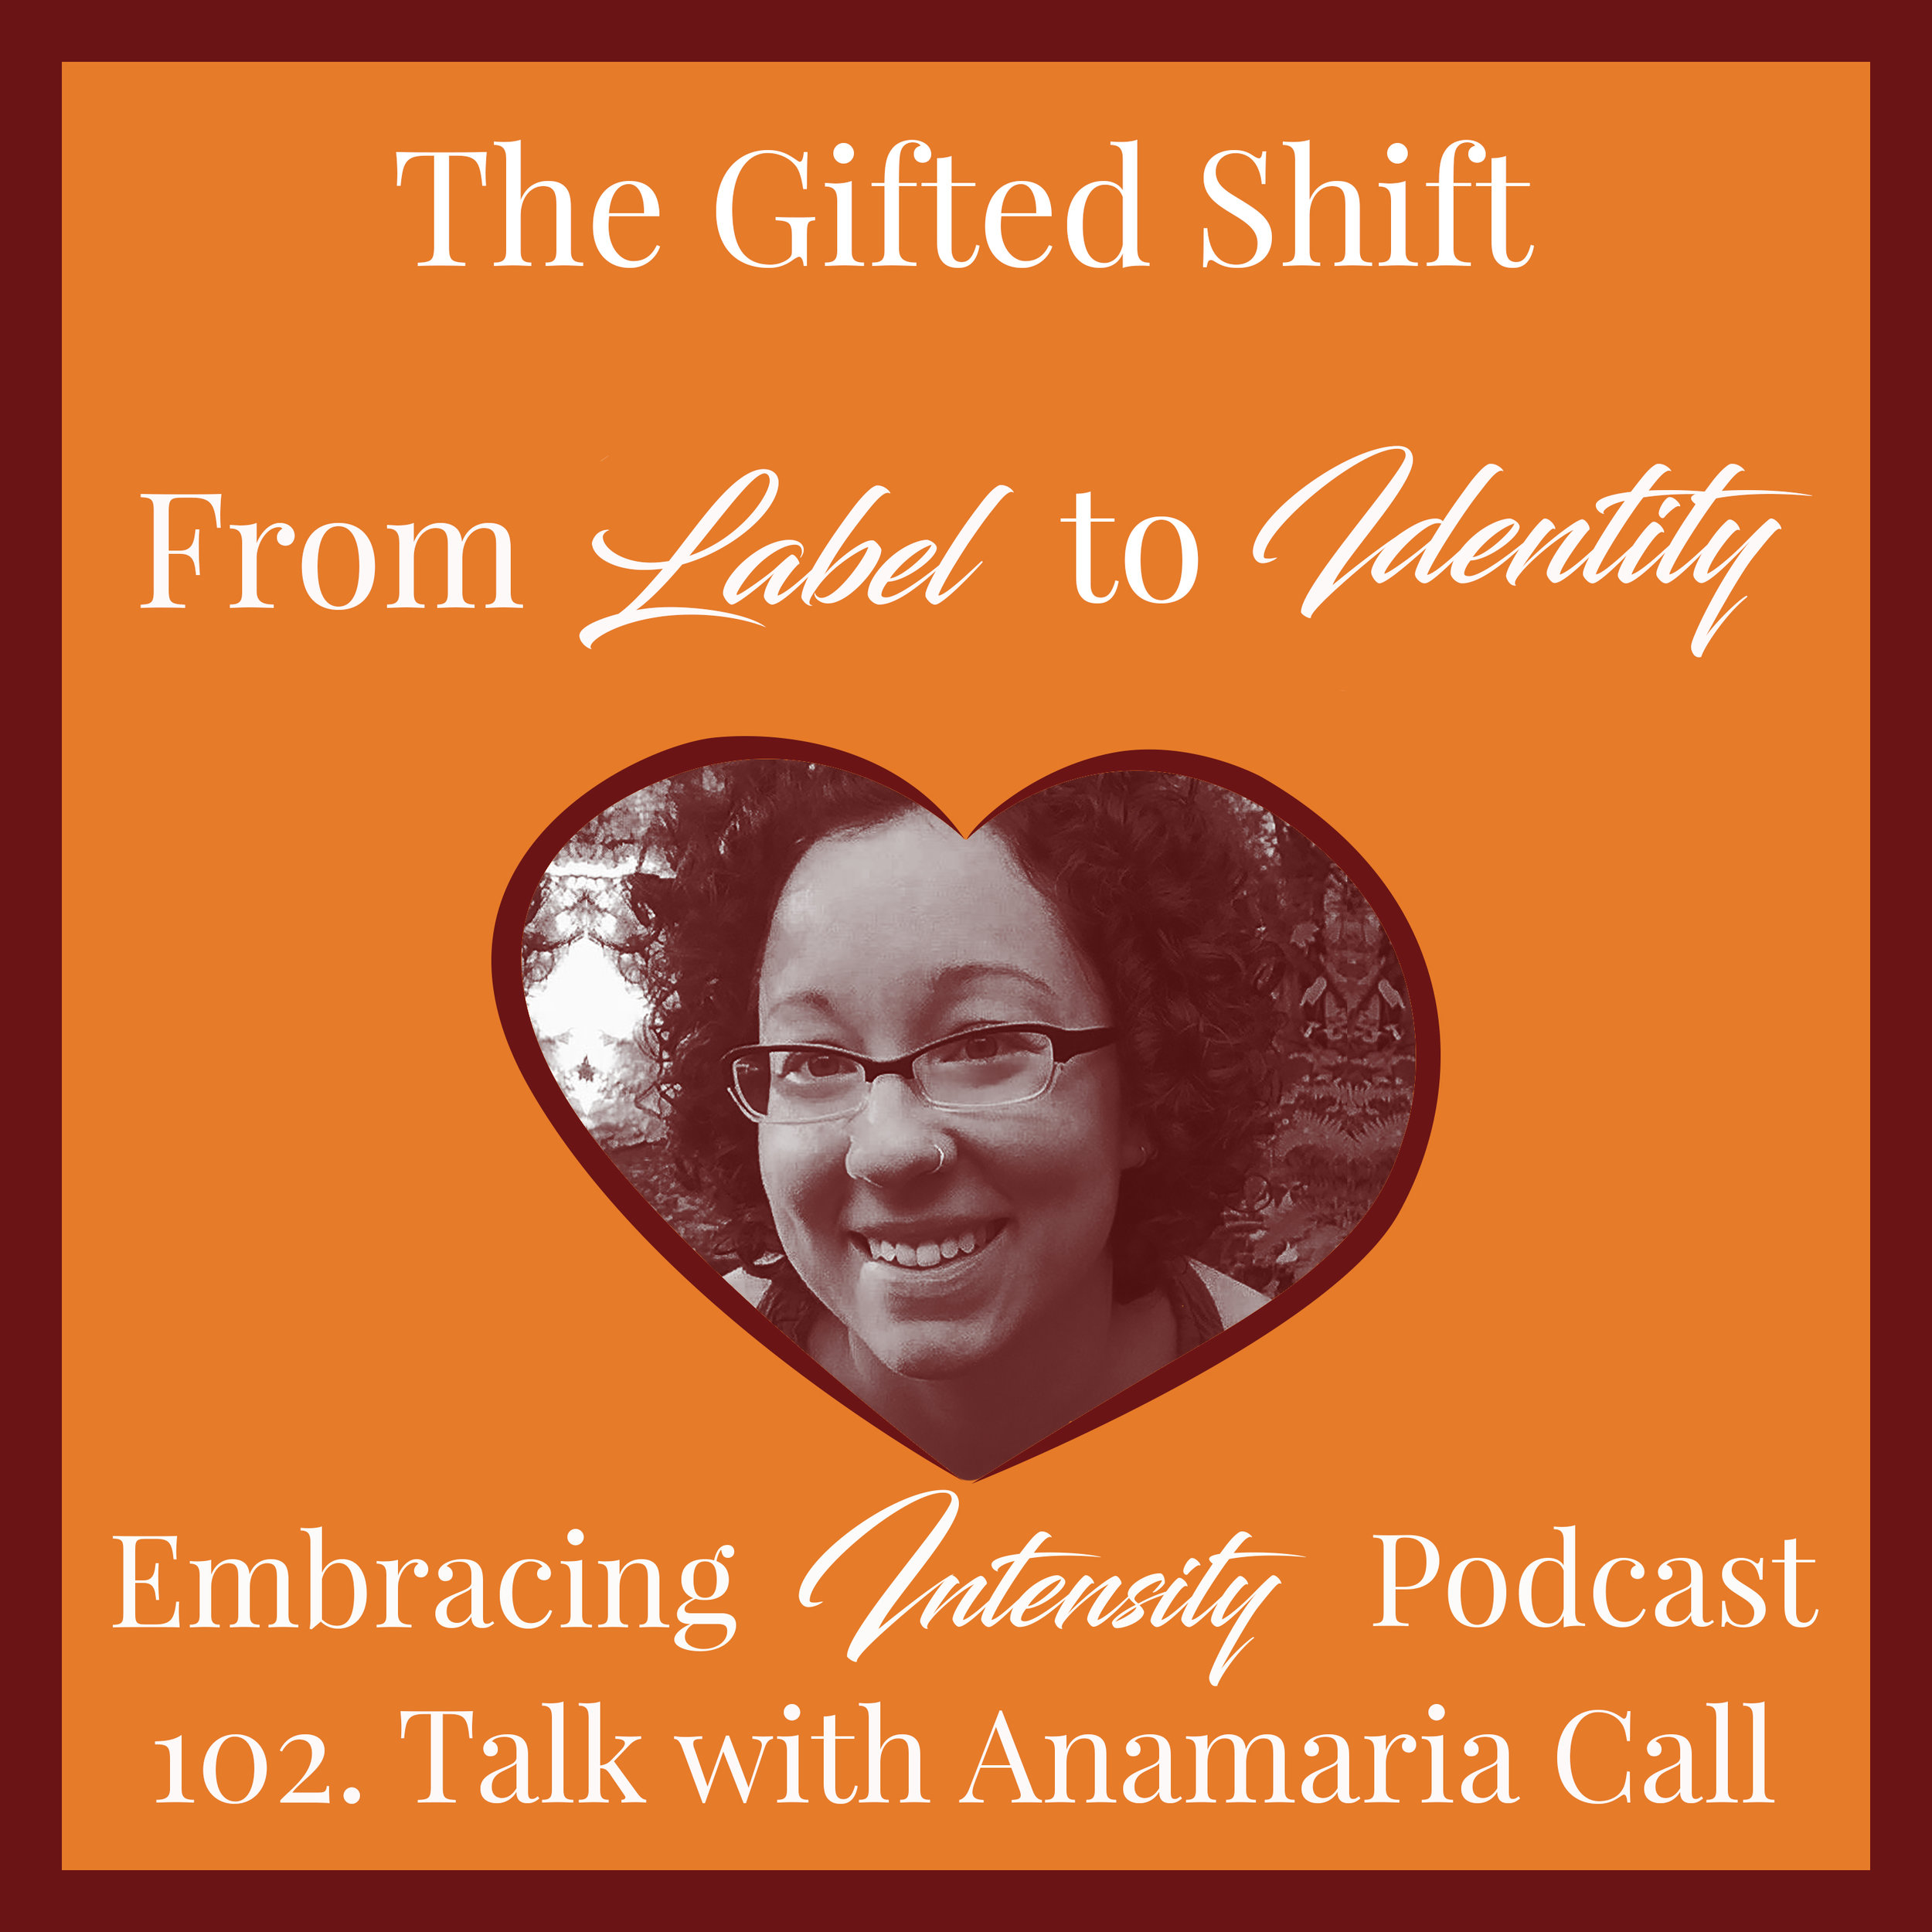 The Gifted Shift: From Identity to Label